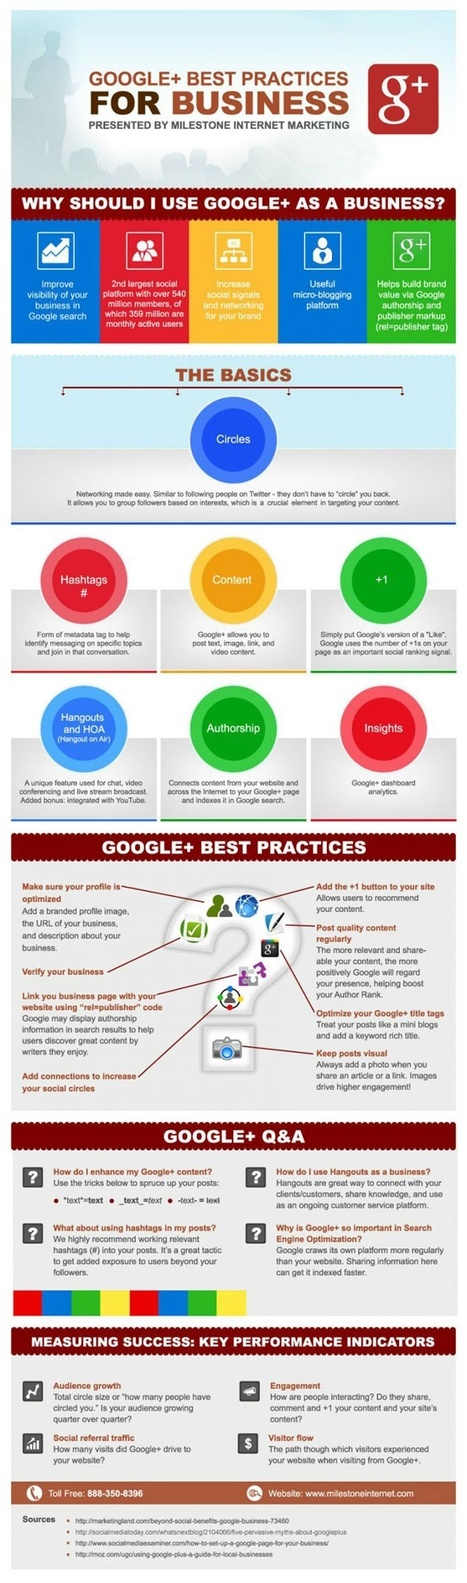 #Infographic How to Use Google+ for Business | ... | All about Visualization & Storytelling | Scoop.it